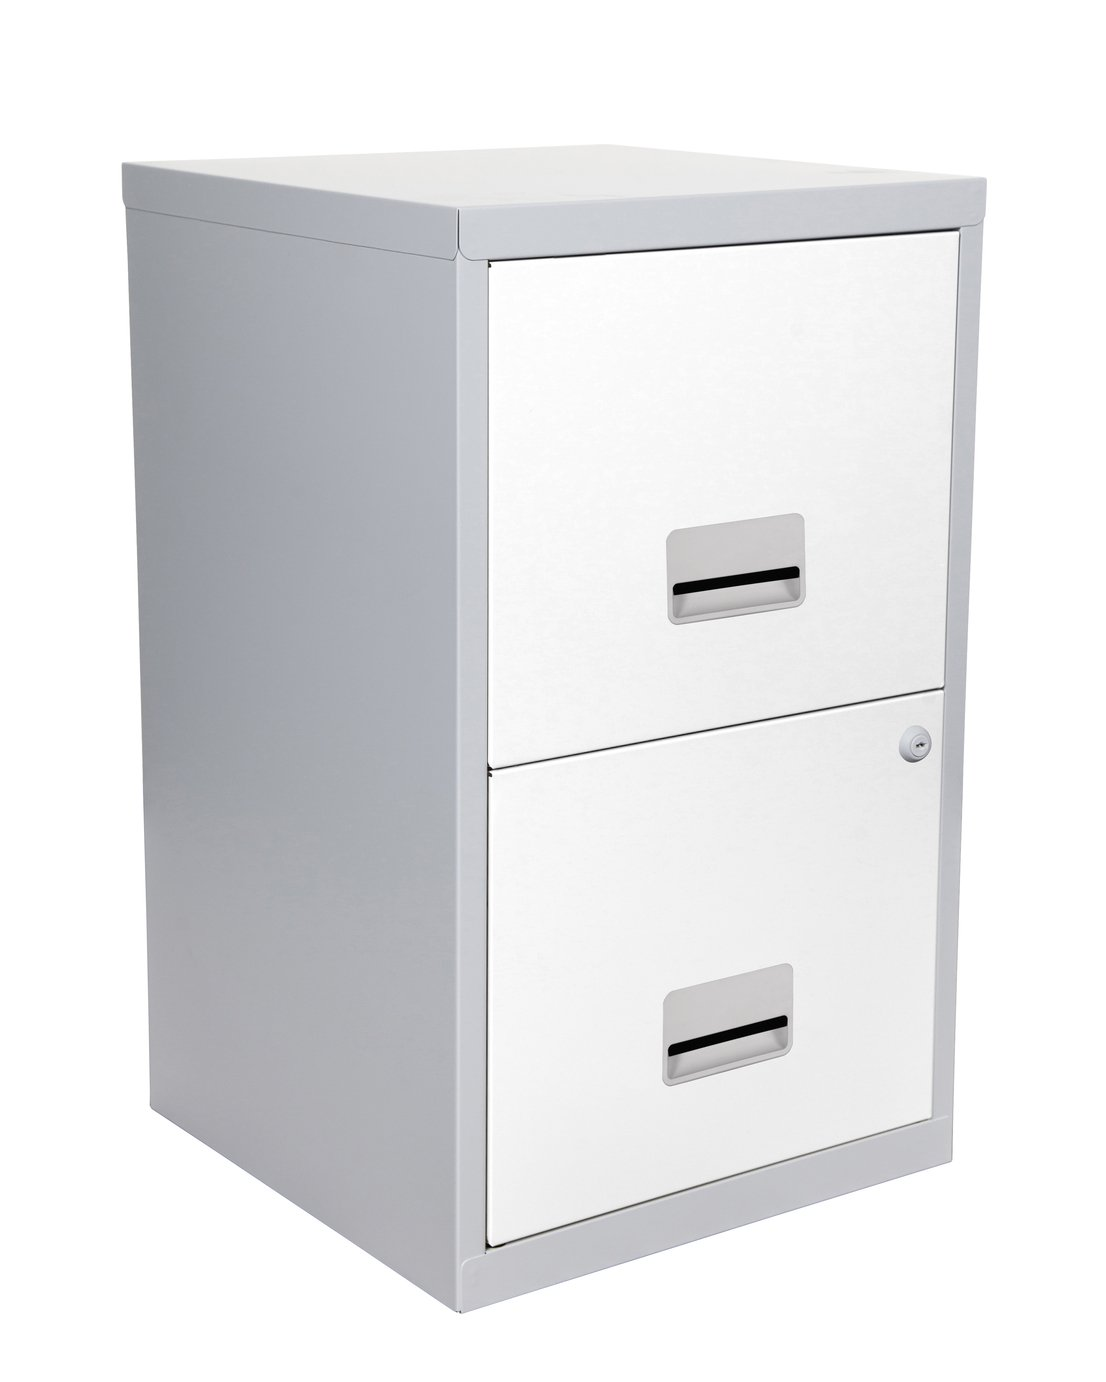 2 Drawer Metal Filing Cabinet   Silver And White